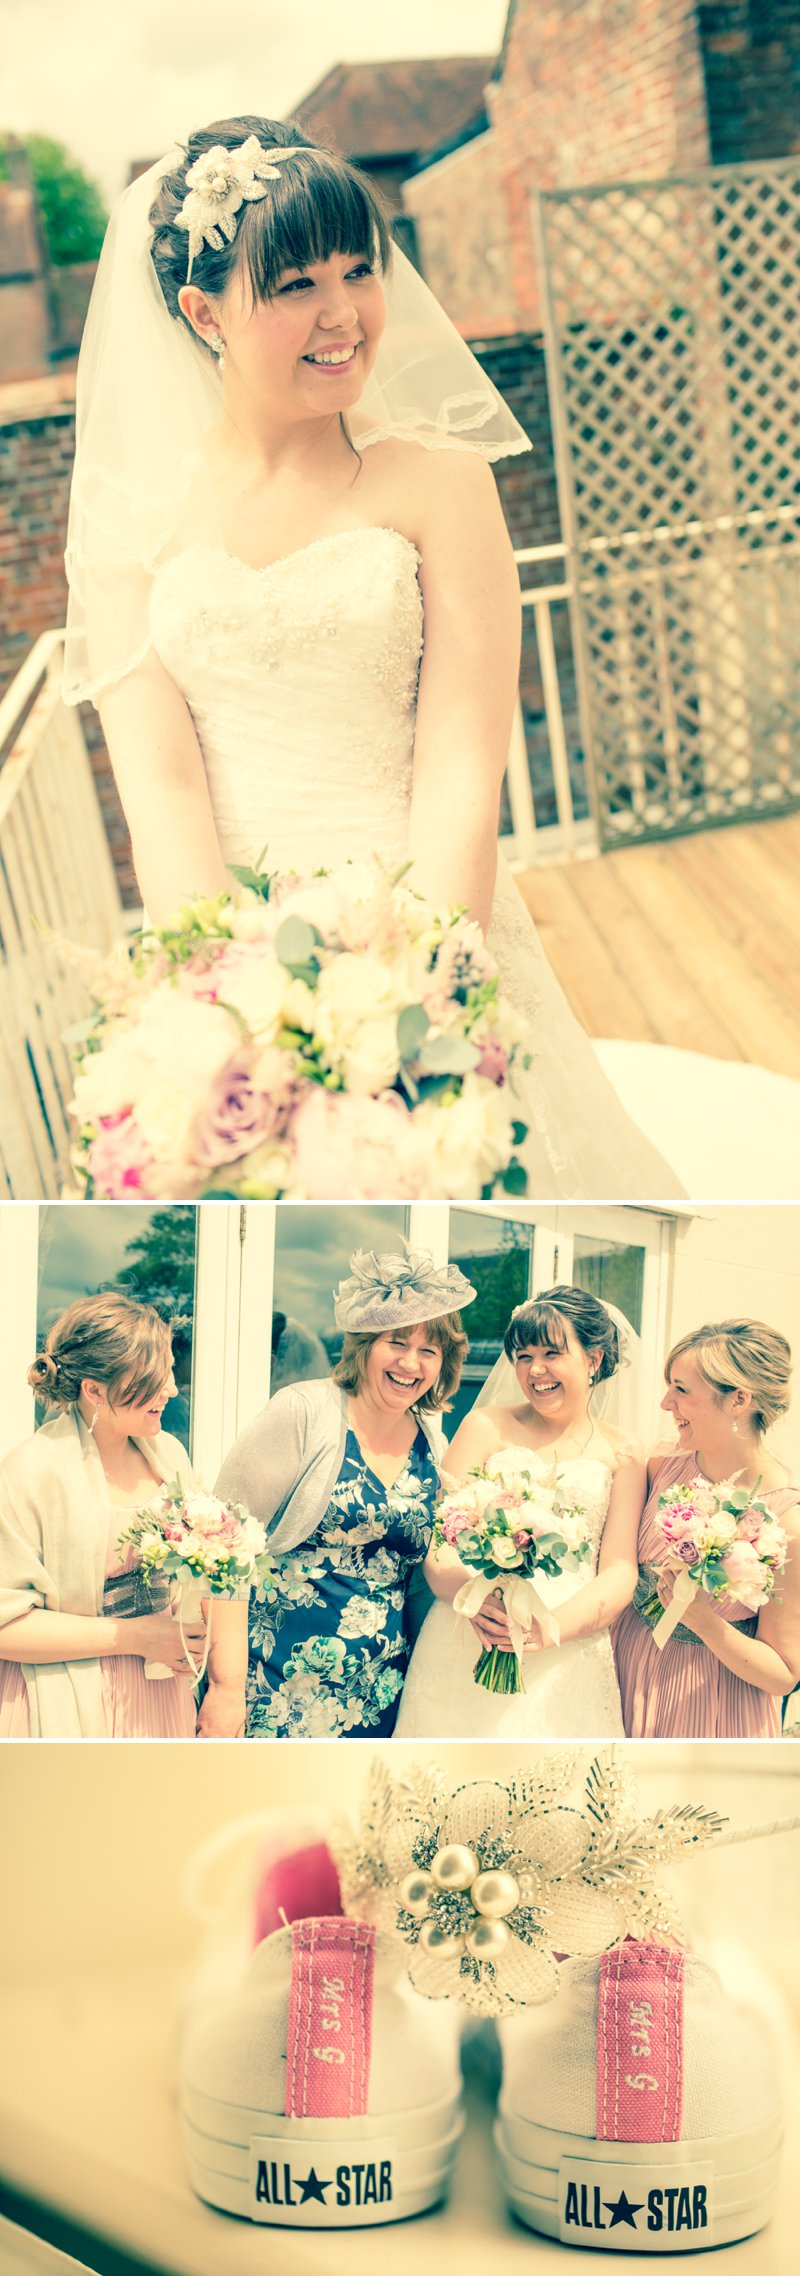 Elegant Wedding At Stanwell House Hotel In Hampshire With Bride In Phil Collins Bridal Gown And Groom In Moss Suit With A Blush Pink Colour Scheme And Comic Book Hero Details Images From Beki Young Wedding Photography 1 What Kitty Did...Had Her Happiest Moment Ever.